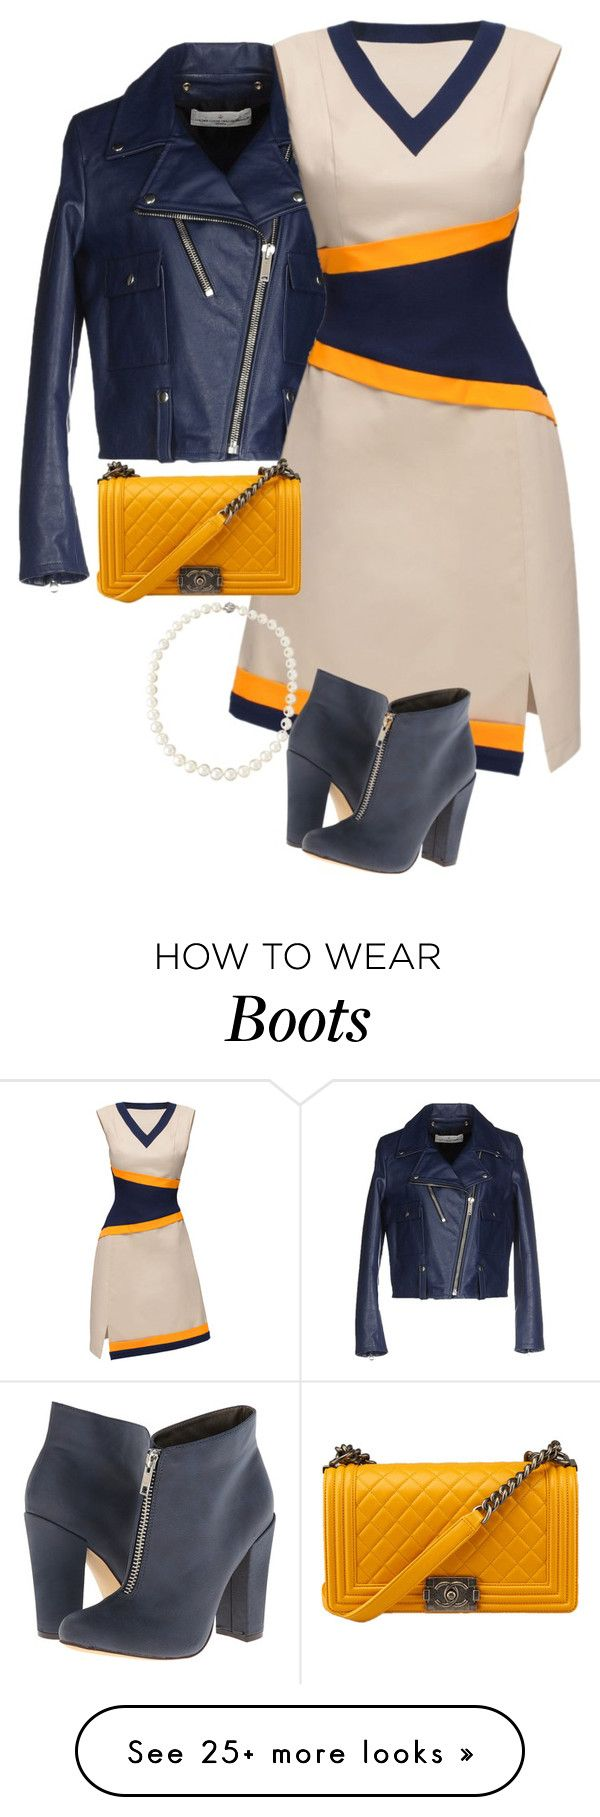 """Lattori dress with ankle boots"" by ladygroovenyc on Polyvore featuring Mode, Golden Goose, Lattori, Michael Antonio und Belpearl"